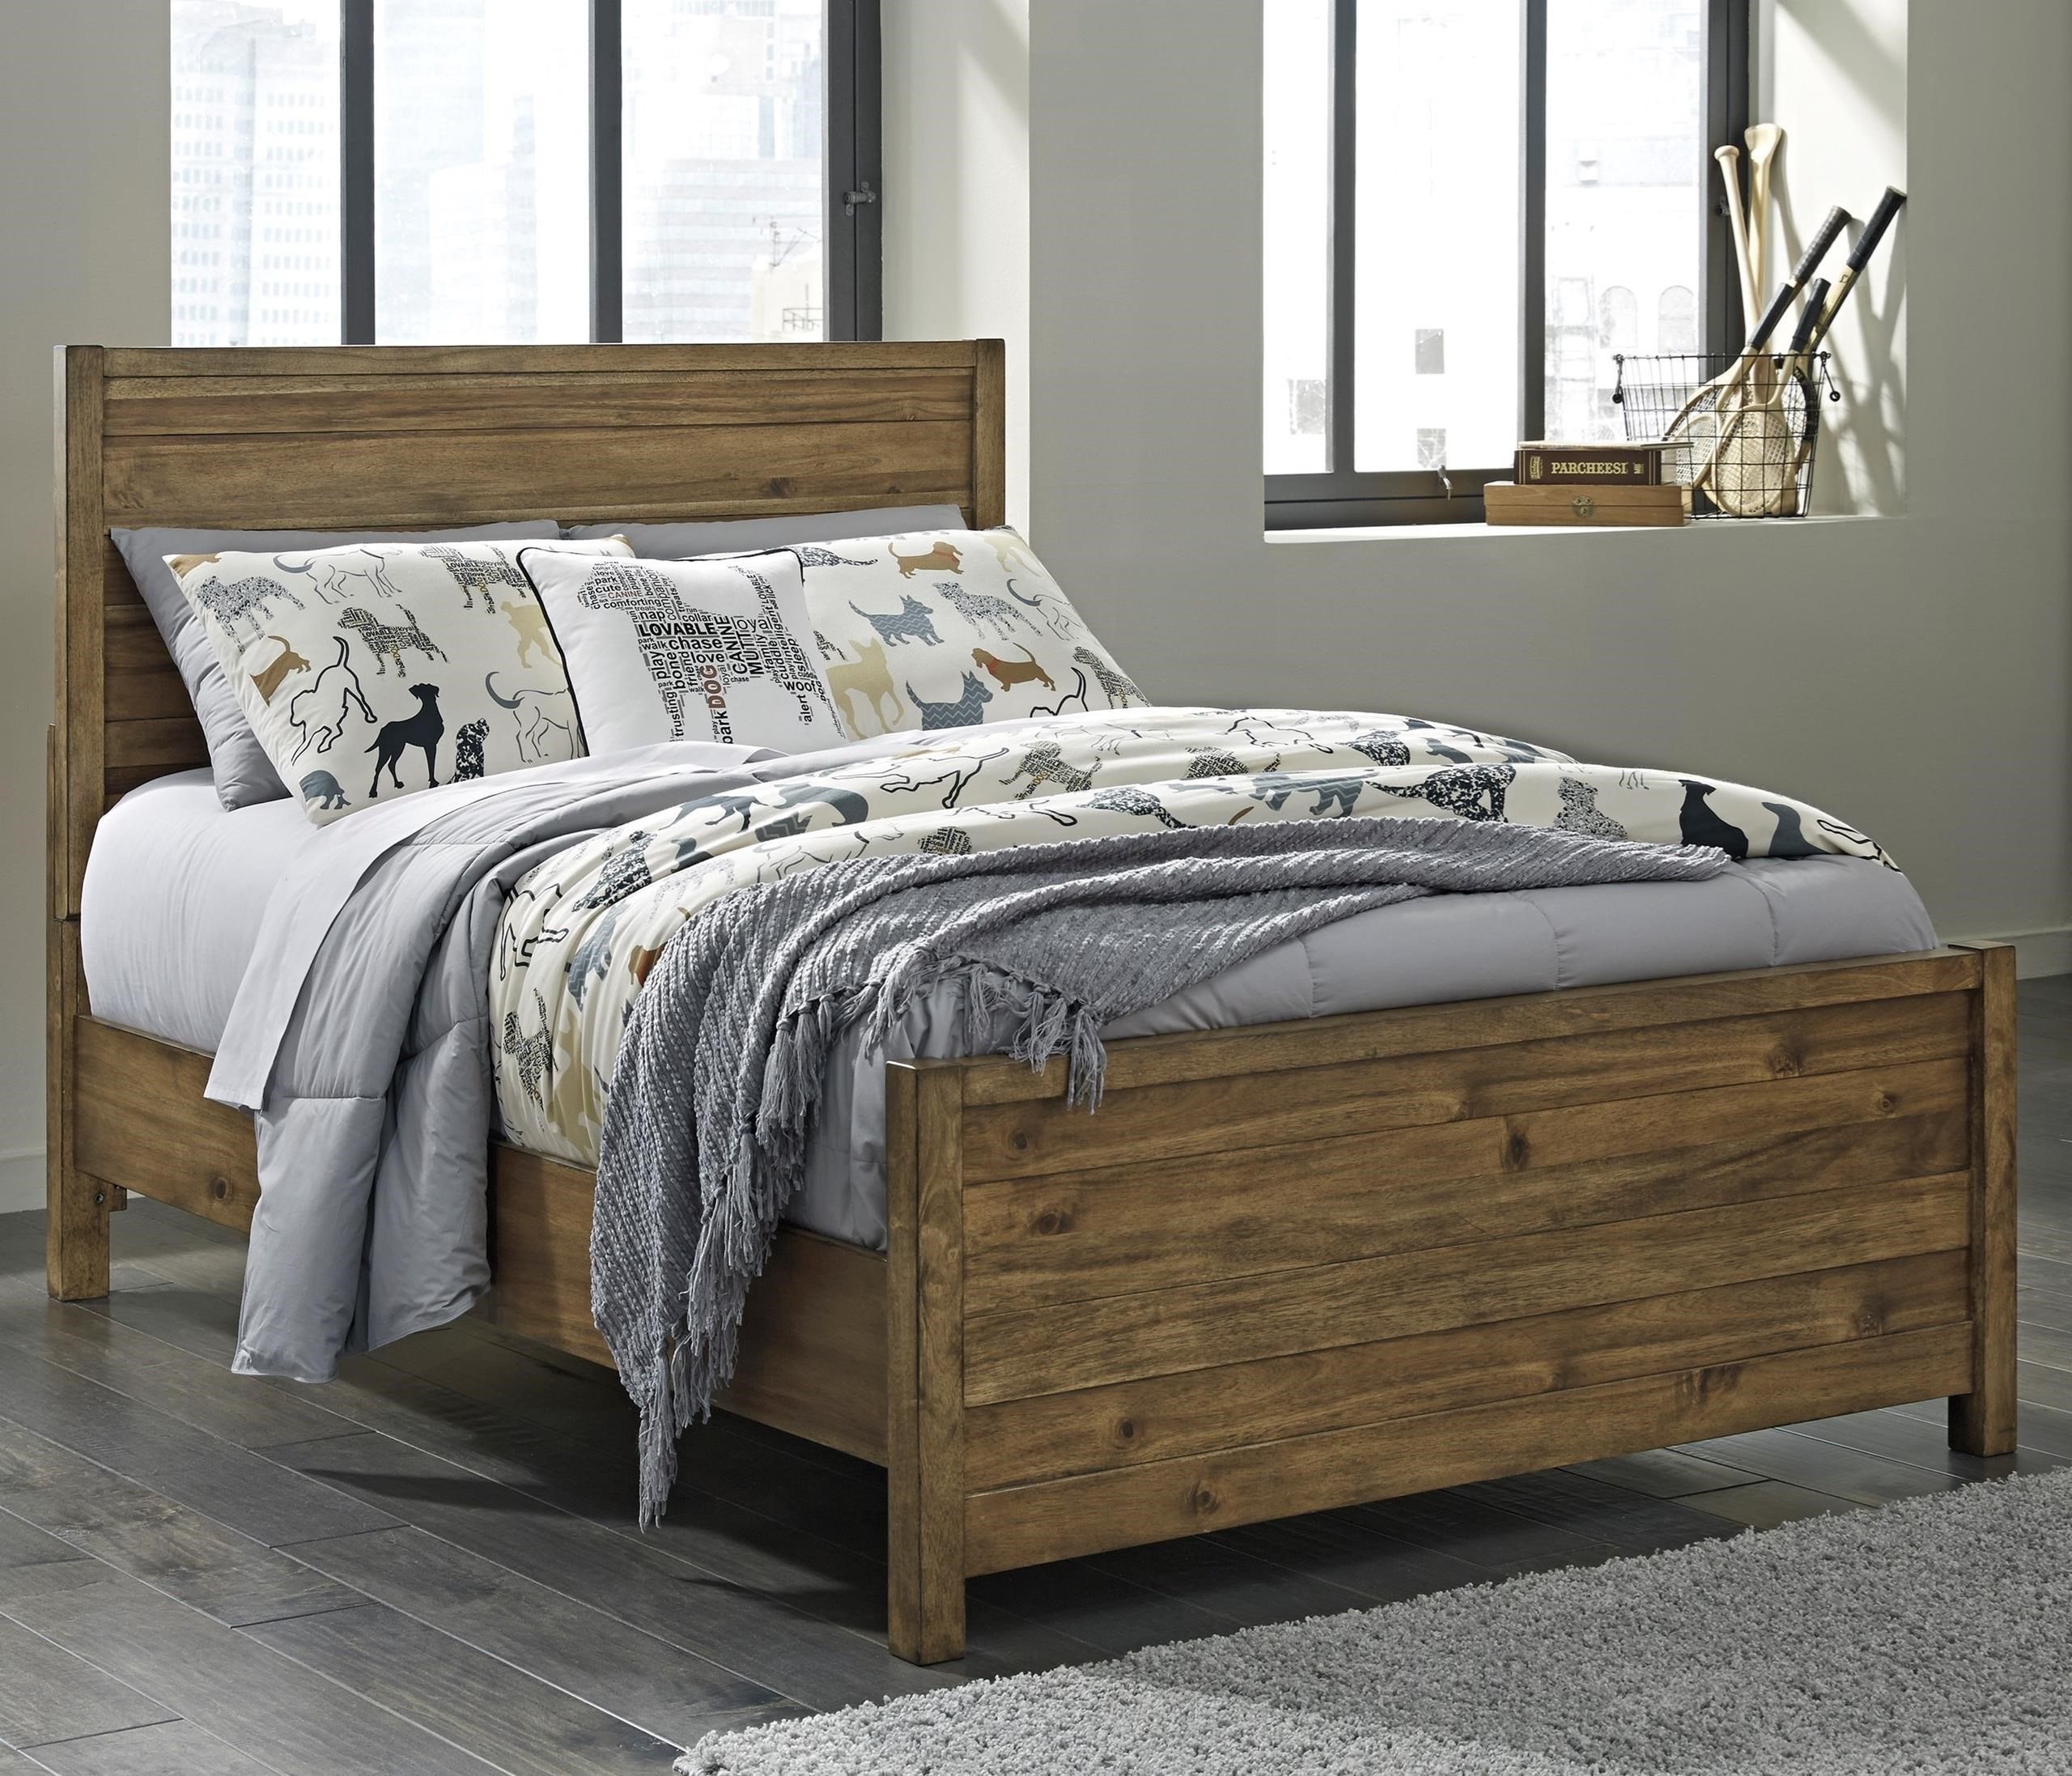 Signature Design by Ashley Fennison Twin Panel Bed - Item Number: B544-53+52+83